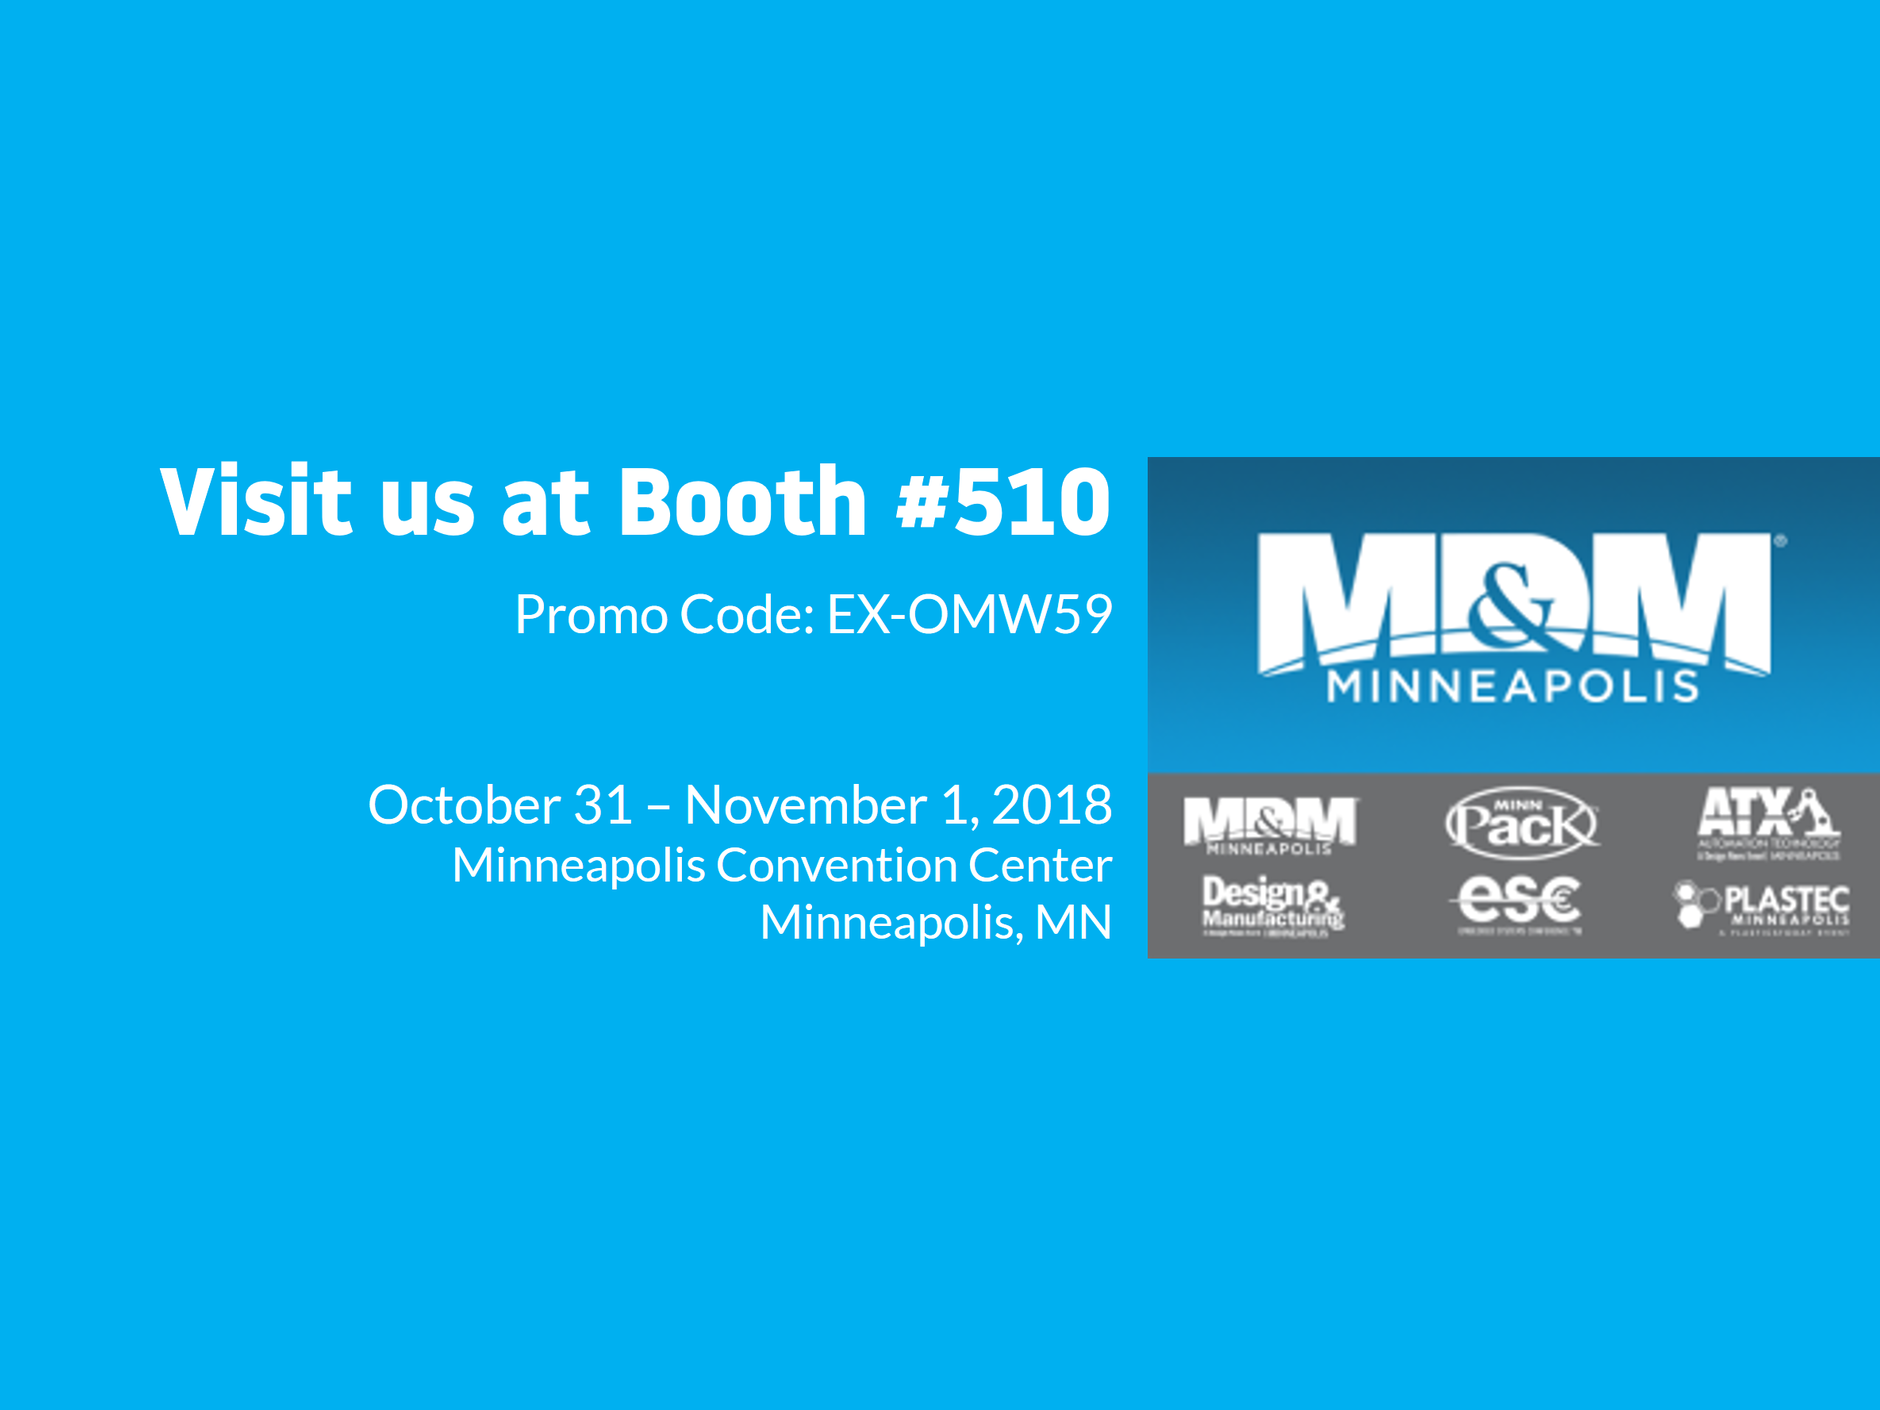 Visit Linx at MD&M - Visit us at Booth #510!Promo code: EX-OMW59October 31 - November 1, 2018Minneapolis Convention Center